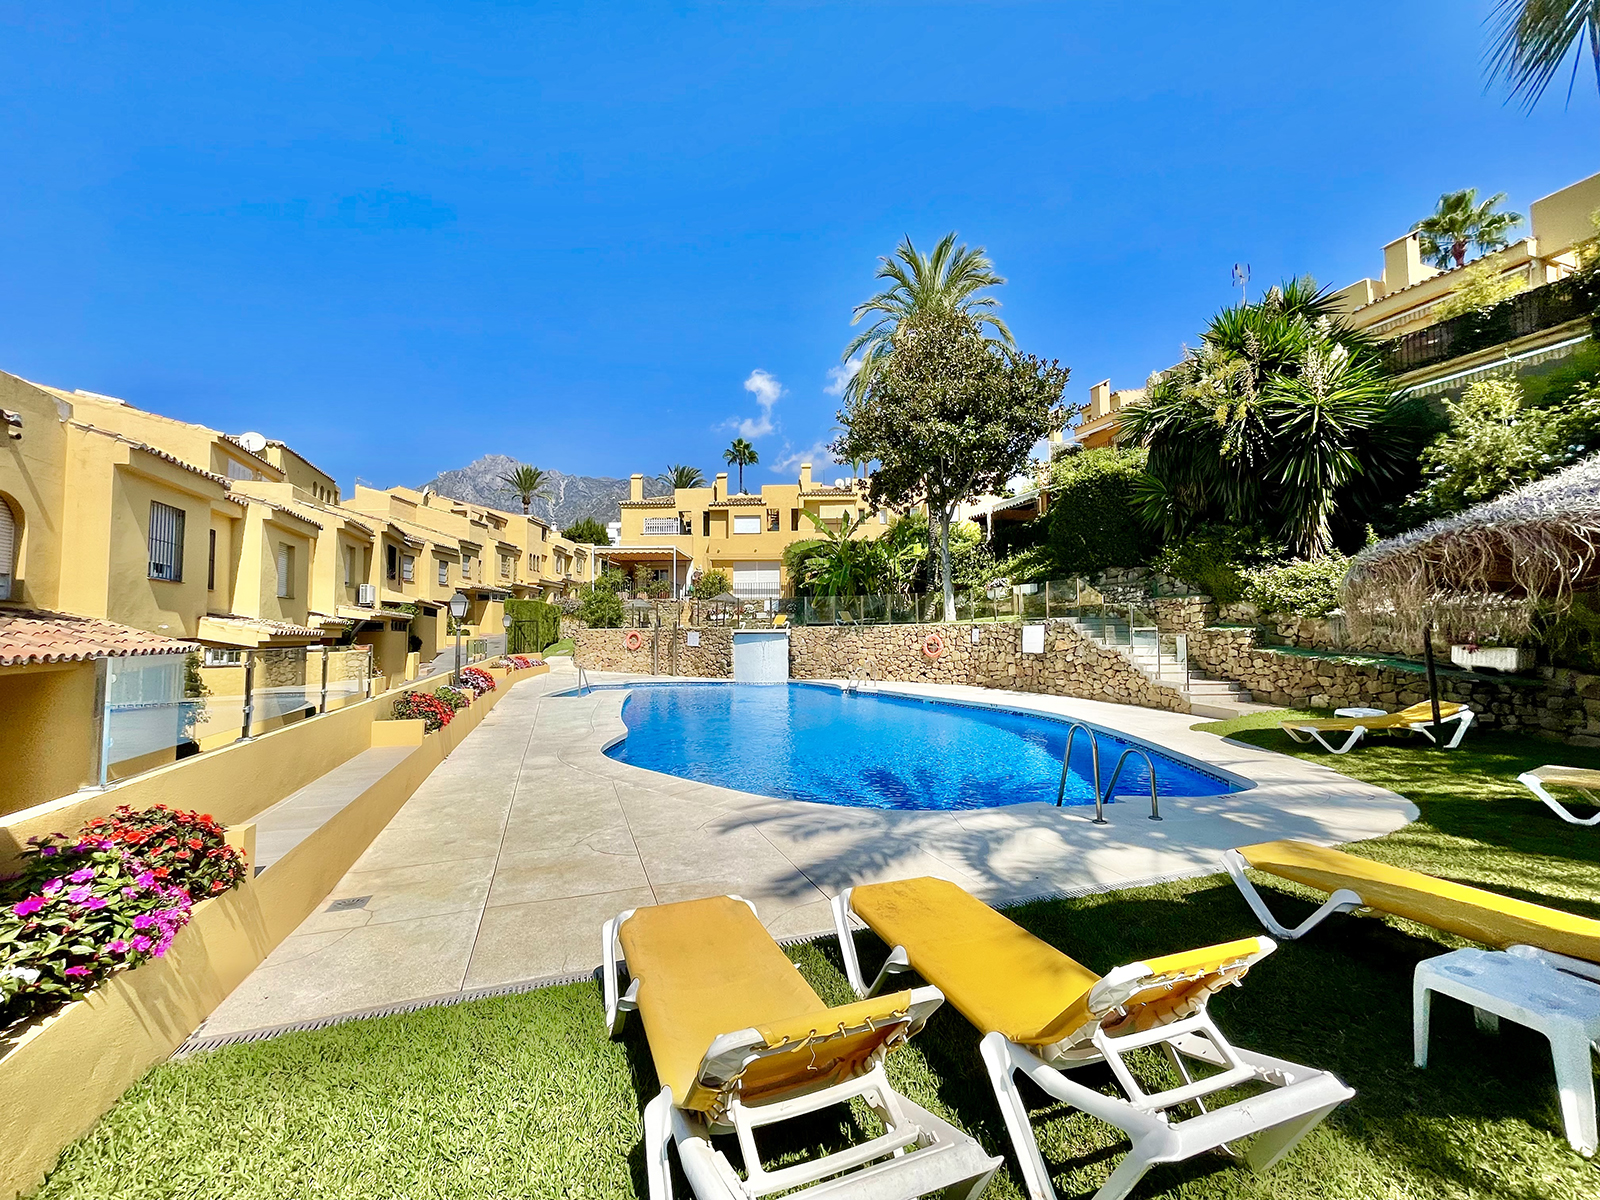 Luxury townhouse in exclusive Marbella area